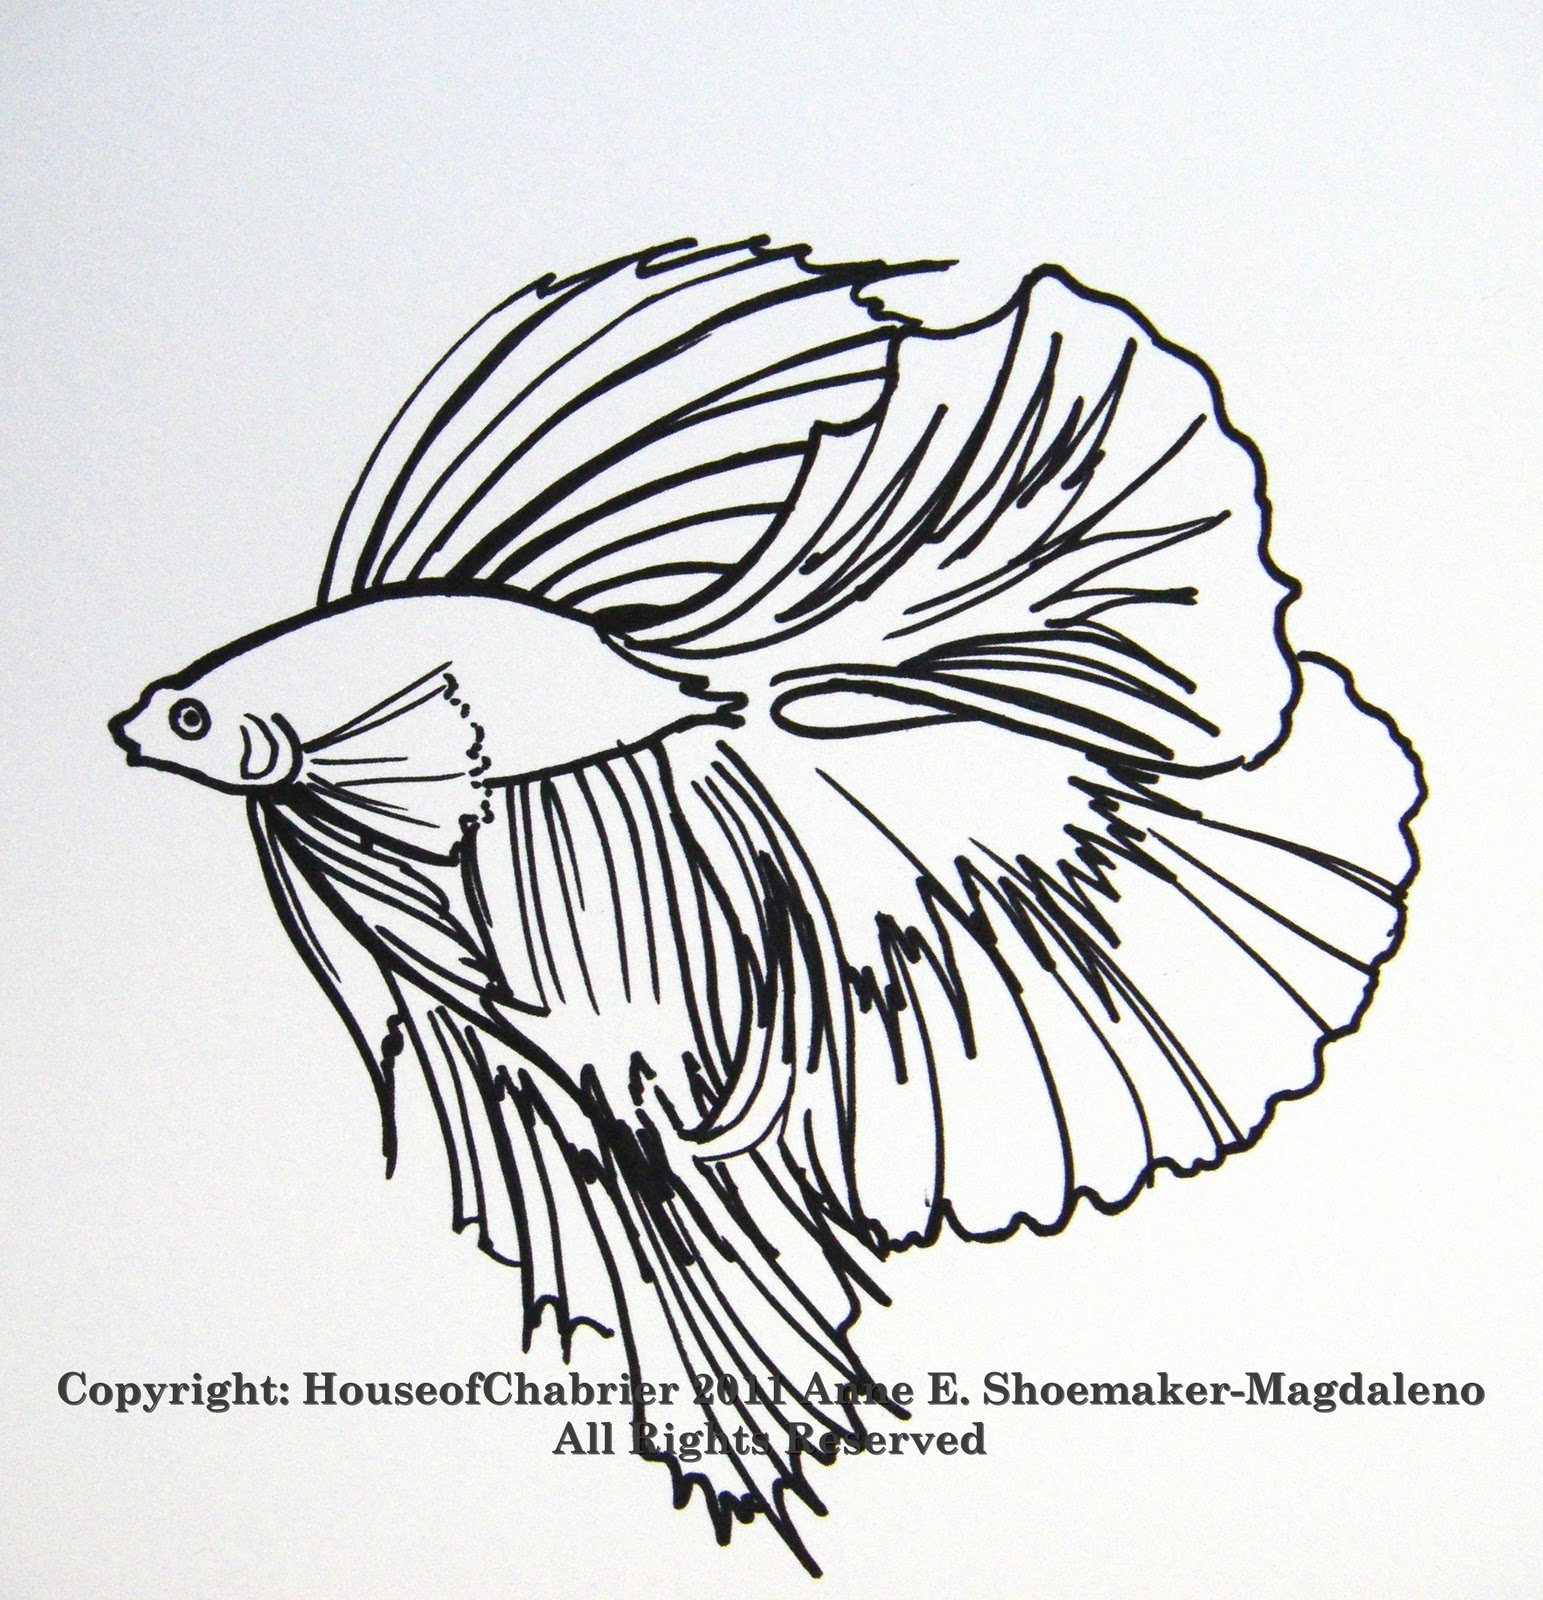 95 ideas Betta Fish Coloring Pages on wwwgerardduchemanncom